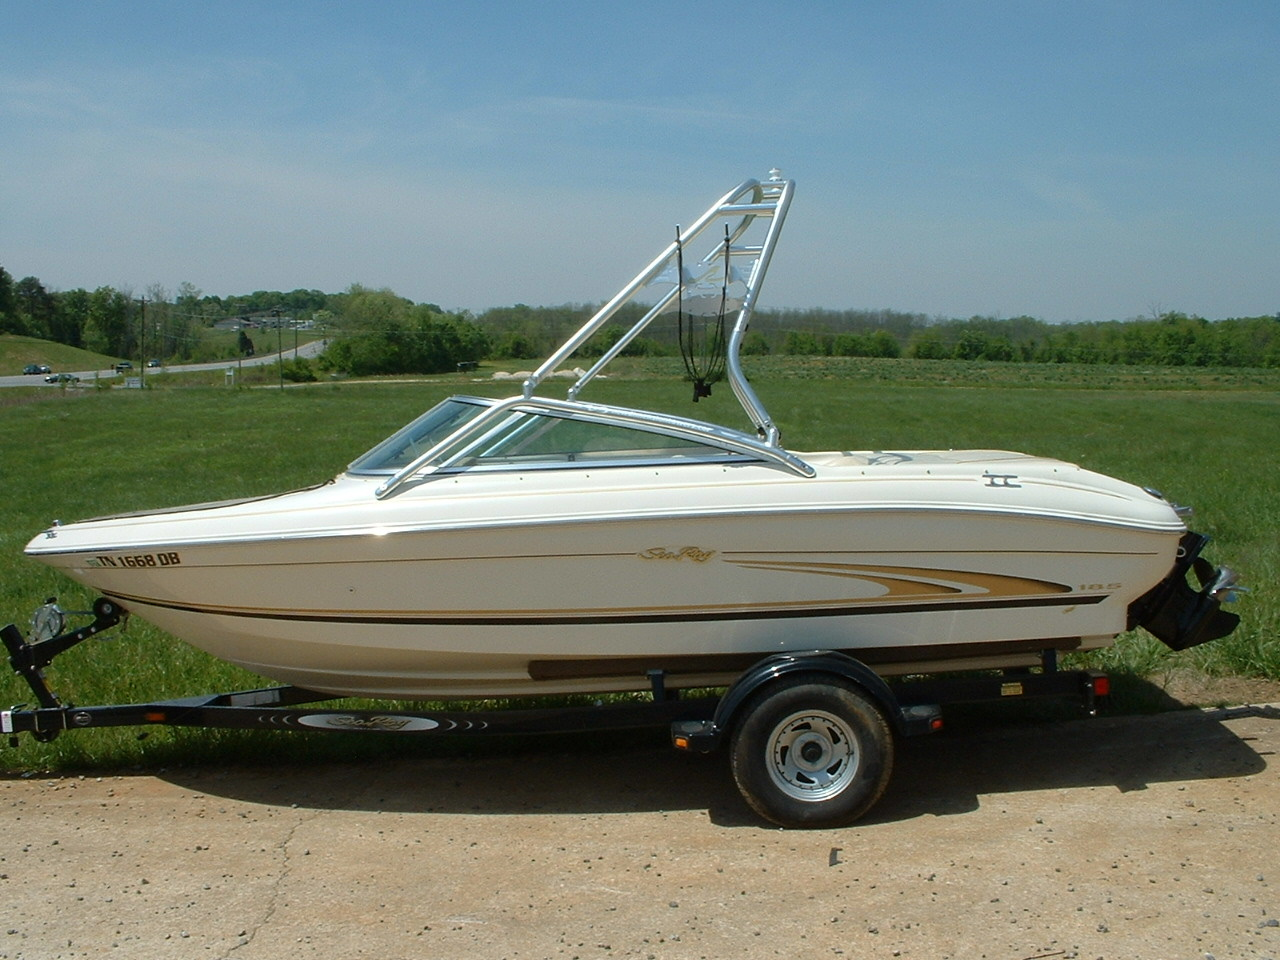 main image of 00 sea ray 185 bowrider with new dimension towers wakeboard tower